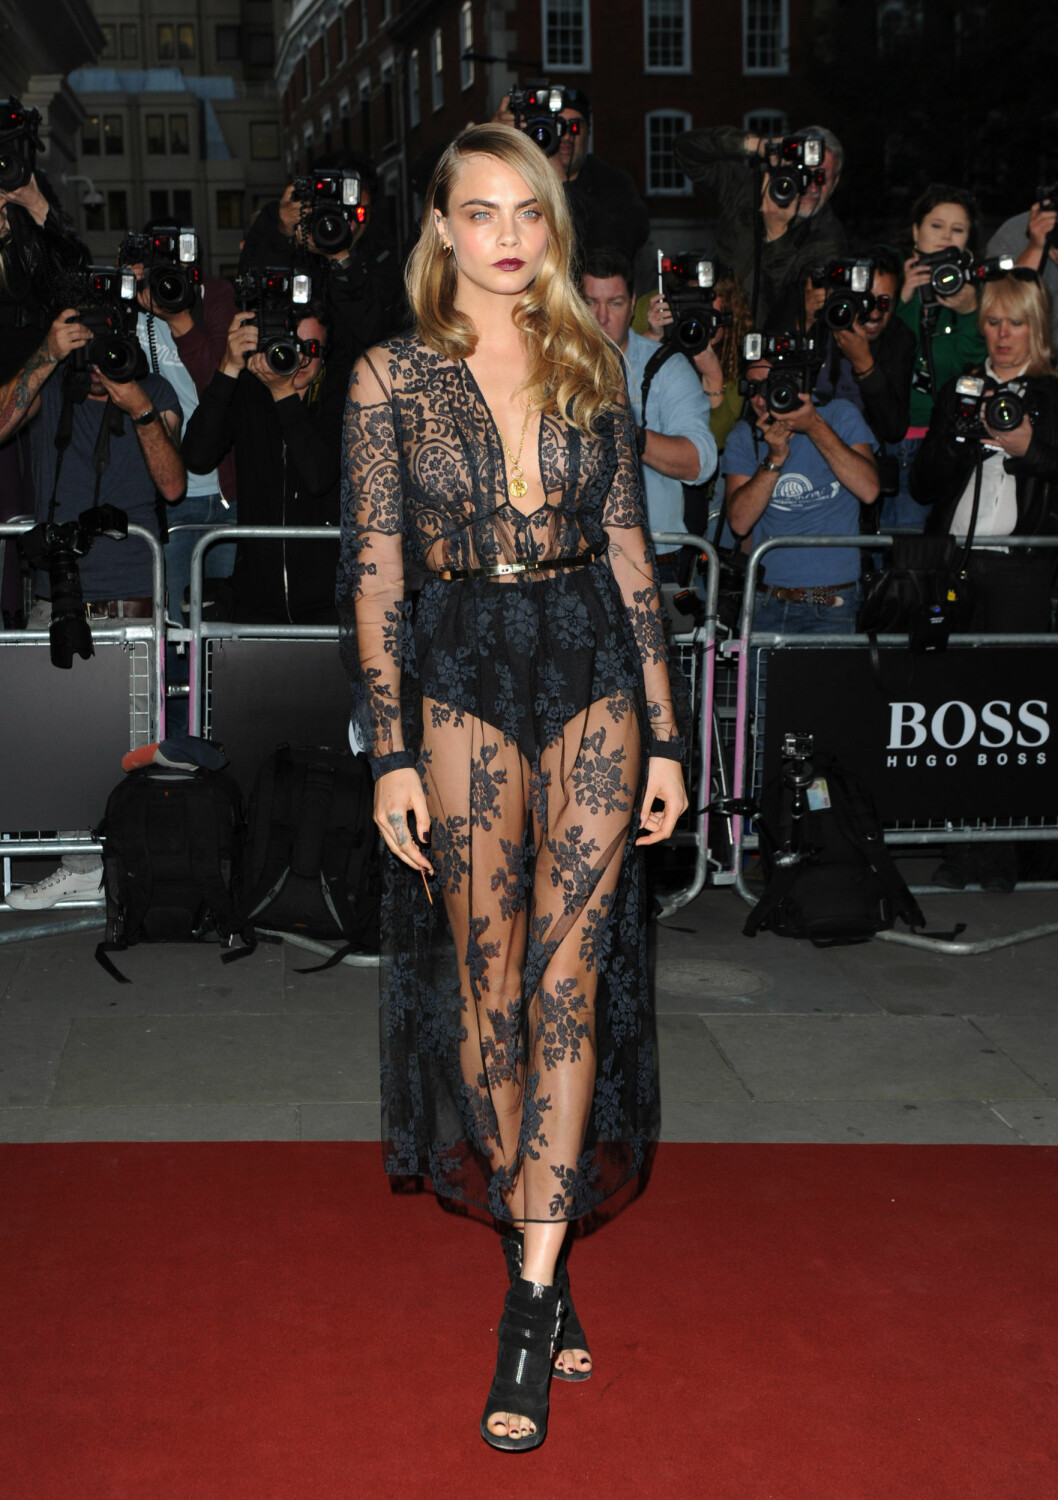 2 September 2014. GQ Men of the Year Awards 2014 held at SENSUELL: Toppmodell Cara Delevingne gikk for sorte blonder og burgunderrøde lepper på GQ Awards på The Royal Opera House i London.  Foto: Stella Pictures